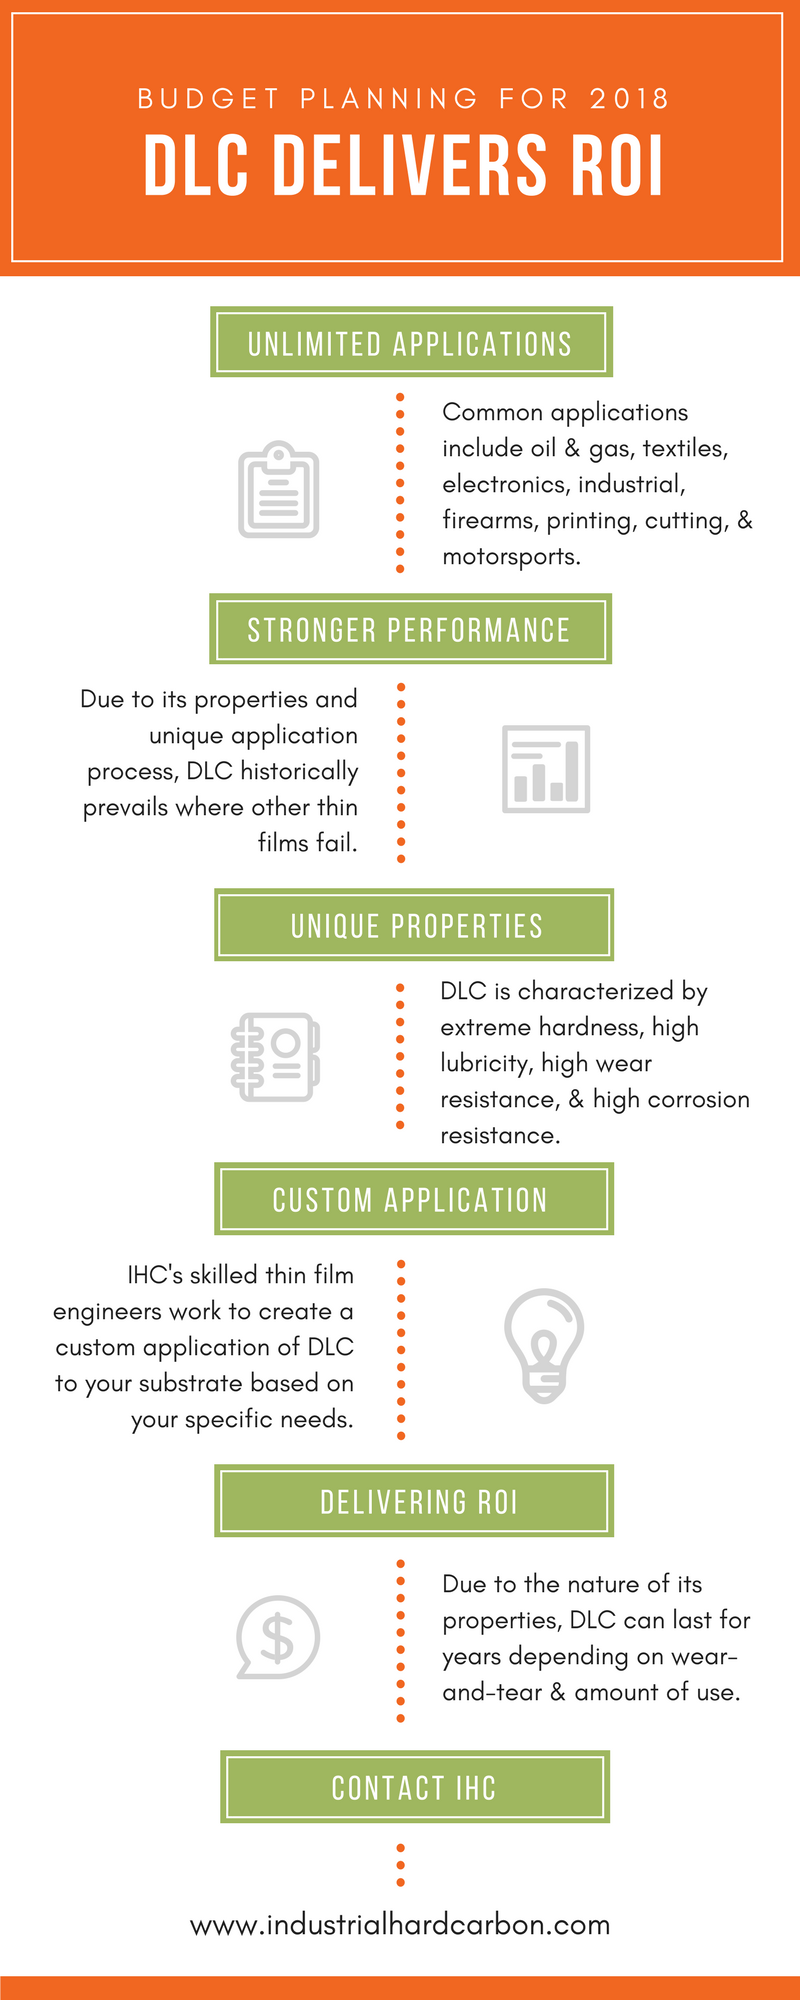 2018-budget-planning-ihc-dlc-delivers-roi-infographic.png